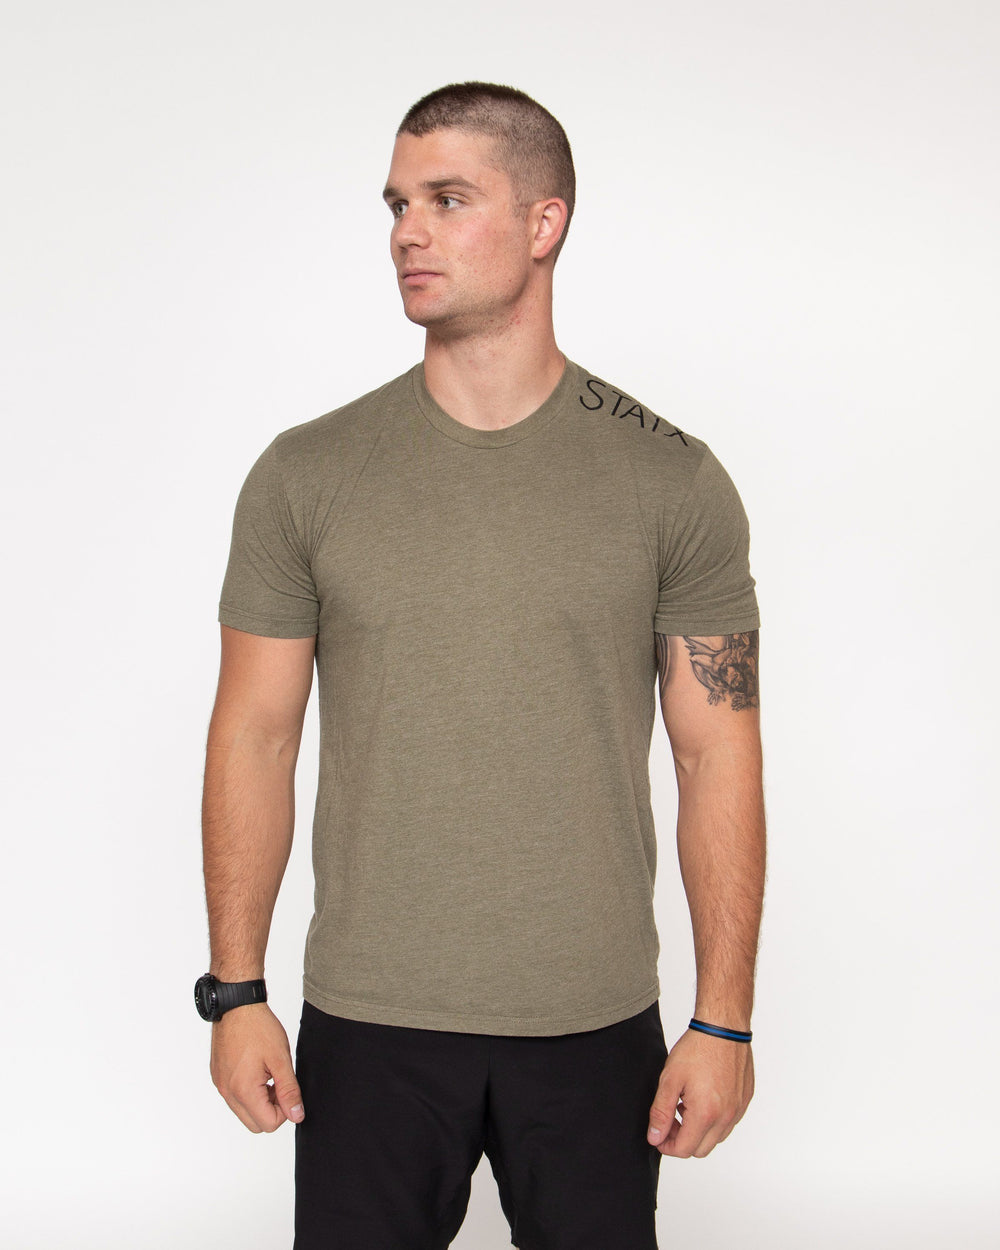 TRAP LOGO TEE Men's Tee STAIX S OLIVE